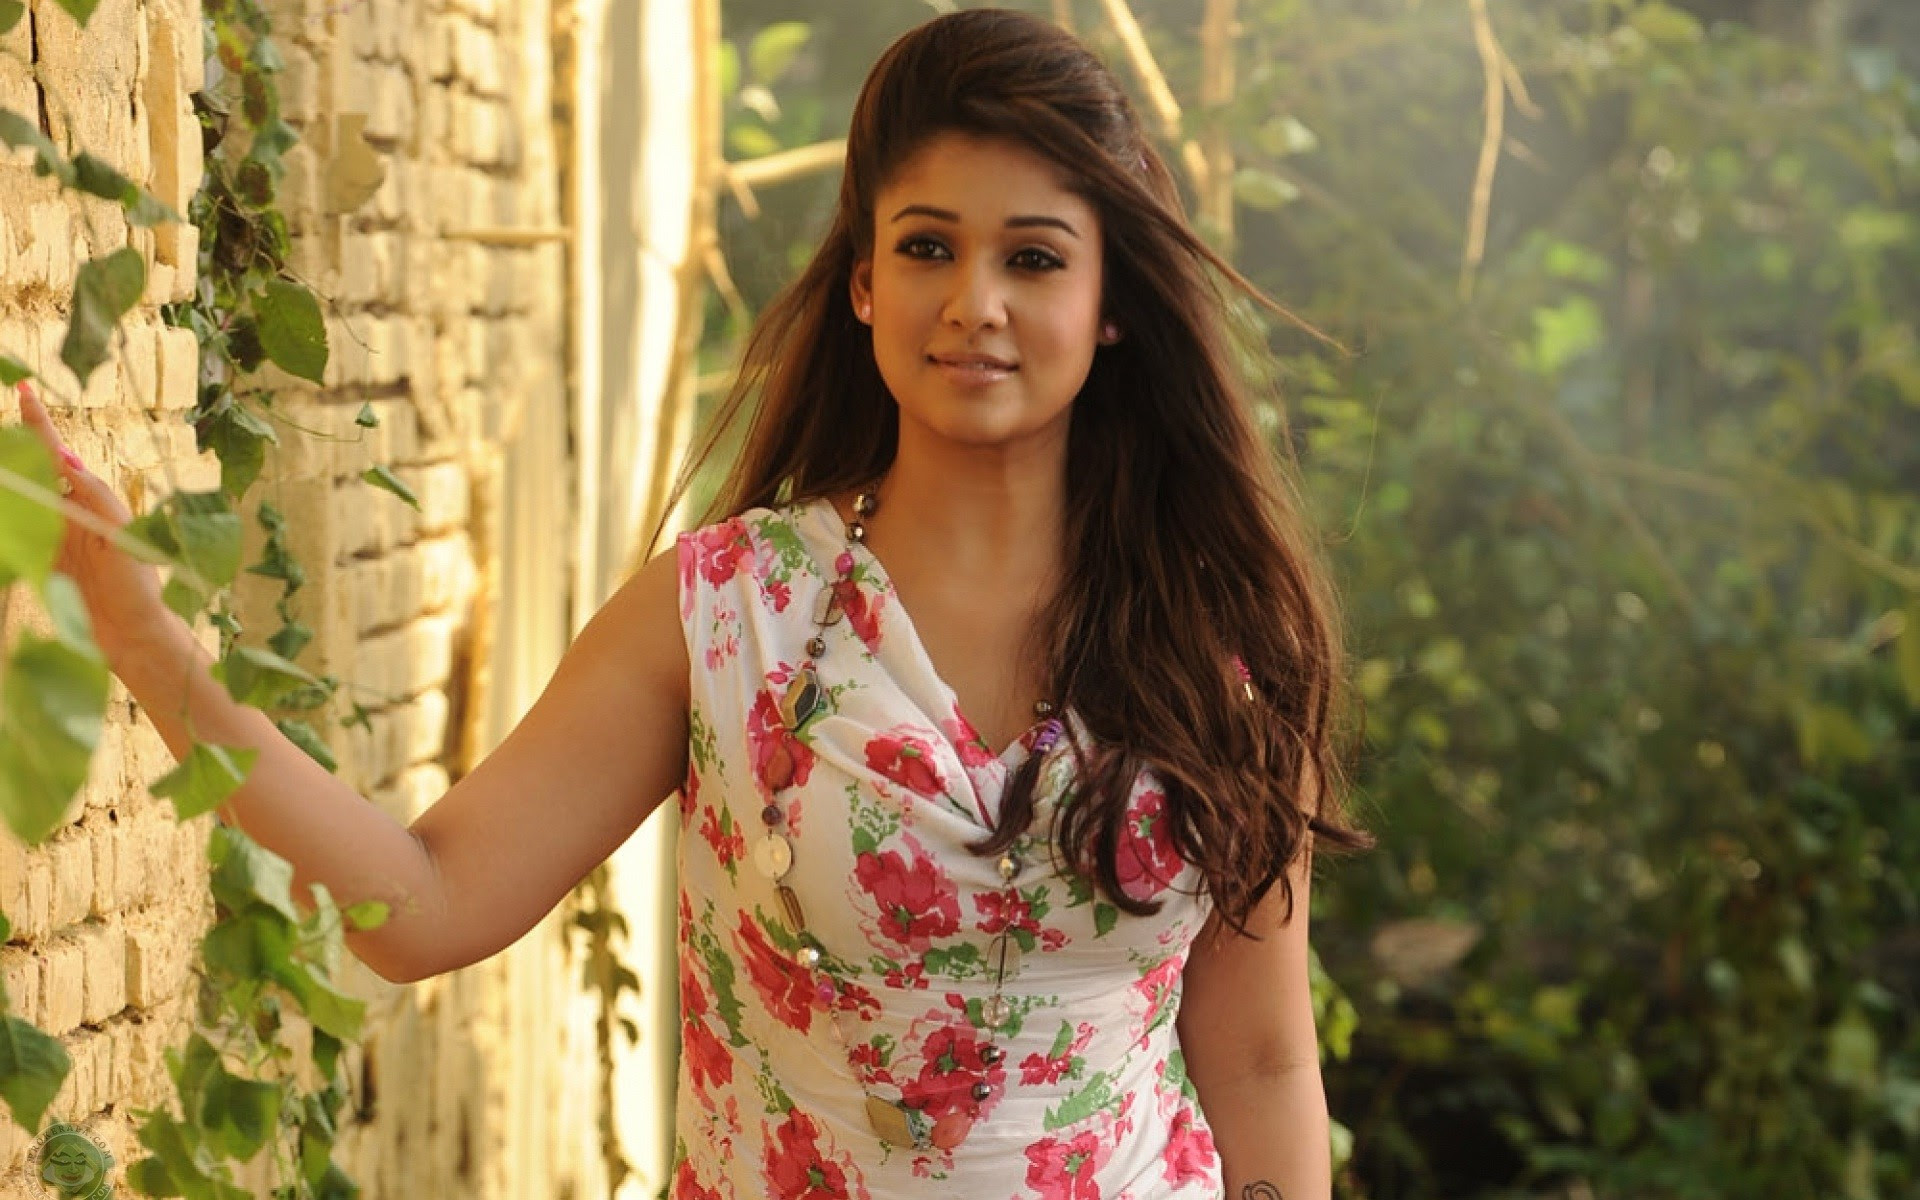 Latest Bollywood Actress Wallpapers 2018 HD 74+ images